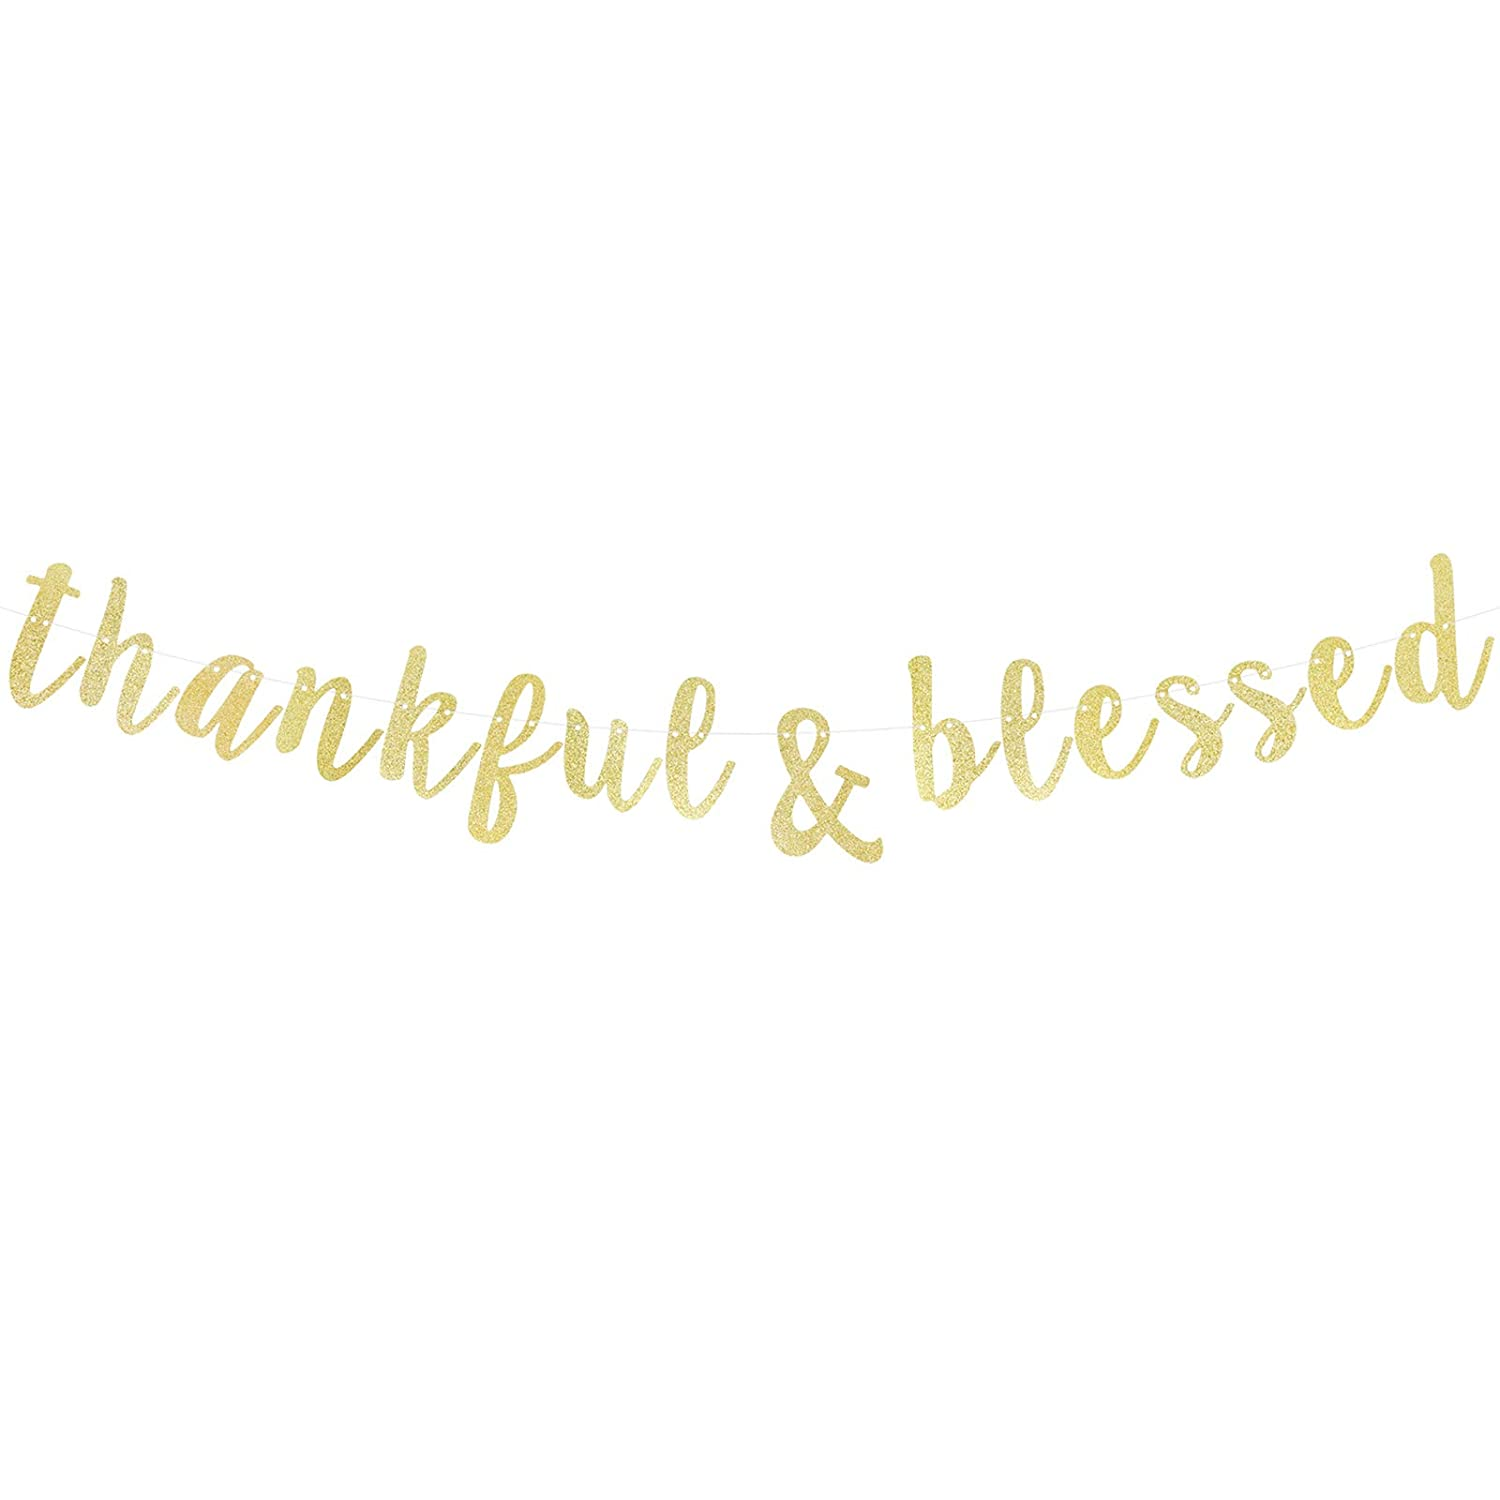 Thankful Blessed Gold Glitter Cursive Script Bunting Banner Happy Thanksgiving Day Autumn Fall Yall Party Decoration Fireplace Table Wall Sign No Diy Required Amazon In Toys Games